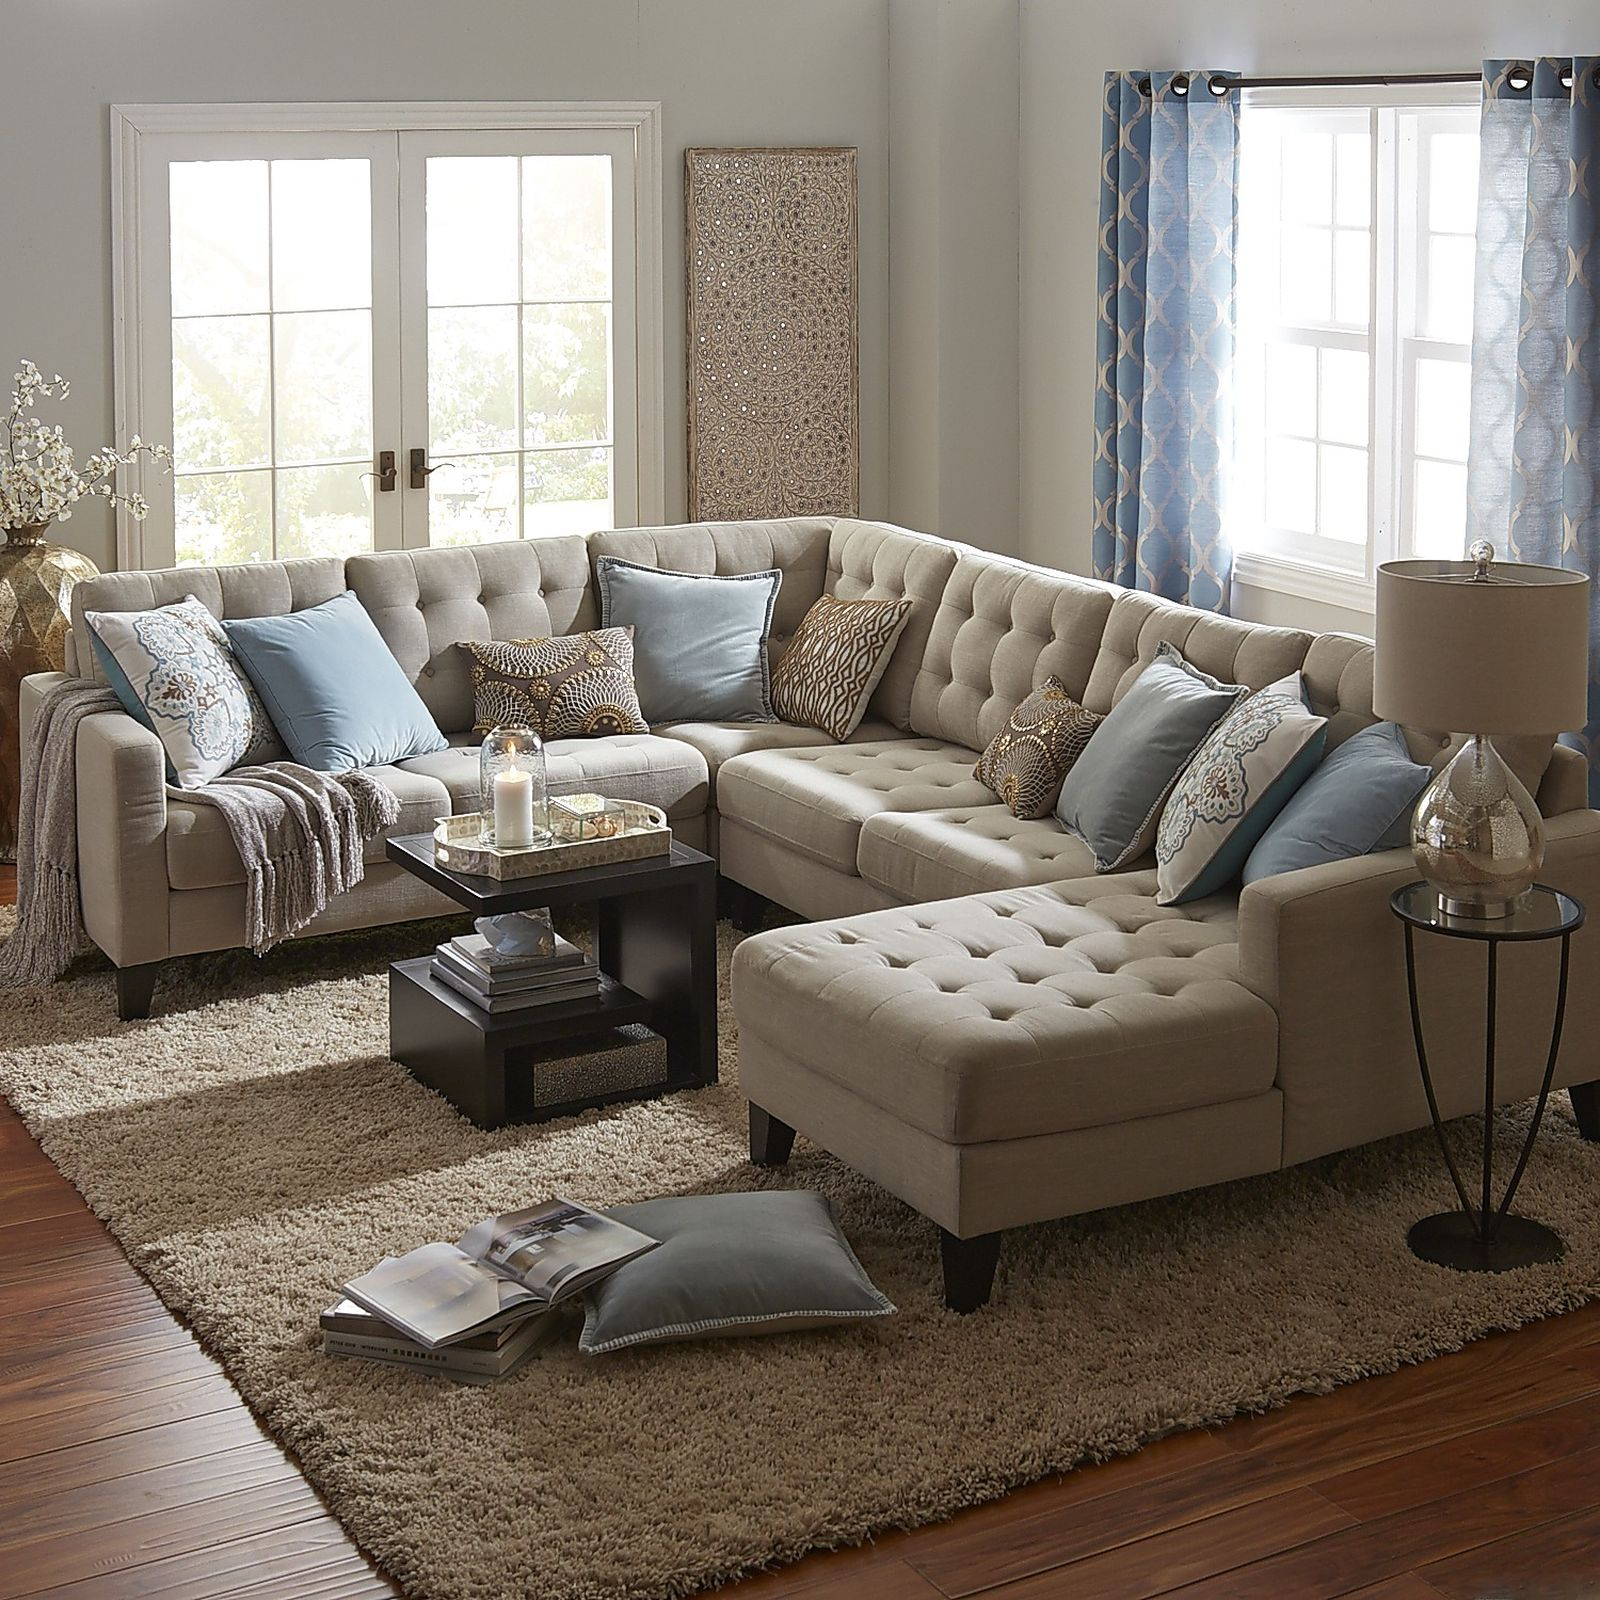 Sectional Sofas. Epic Sectional Sofas 89 Living Room Sofa ...